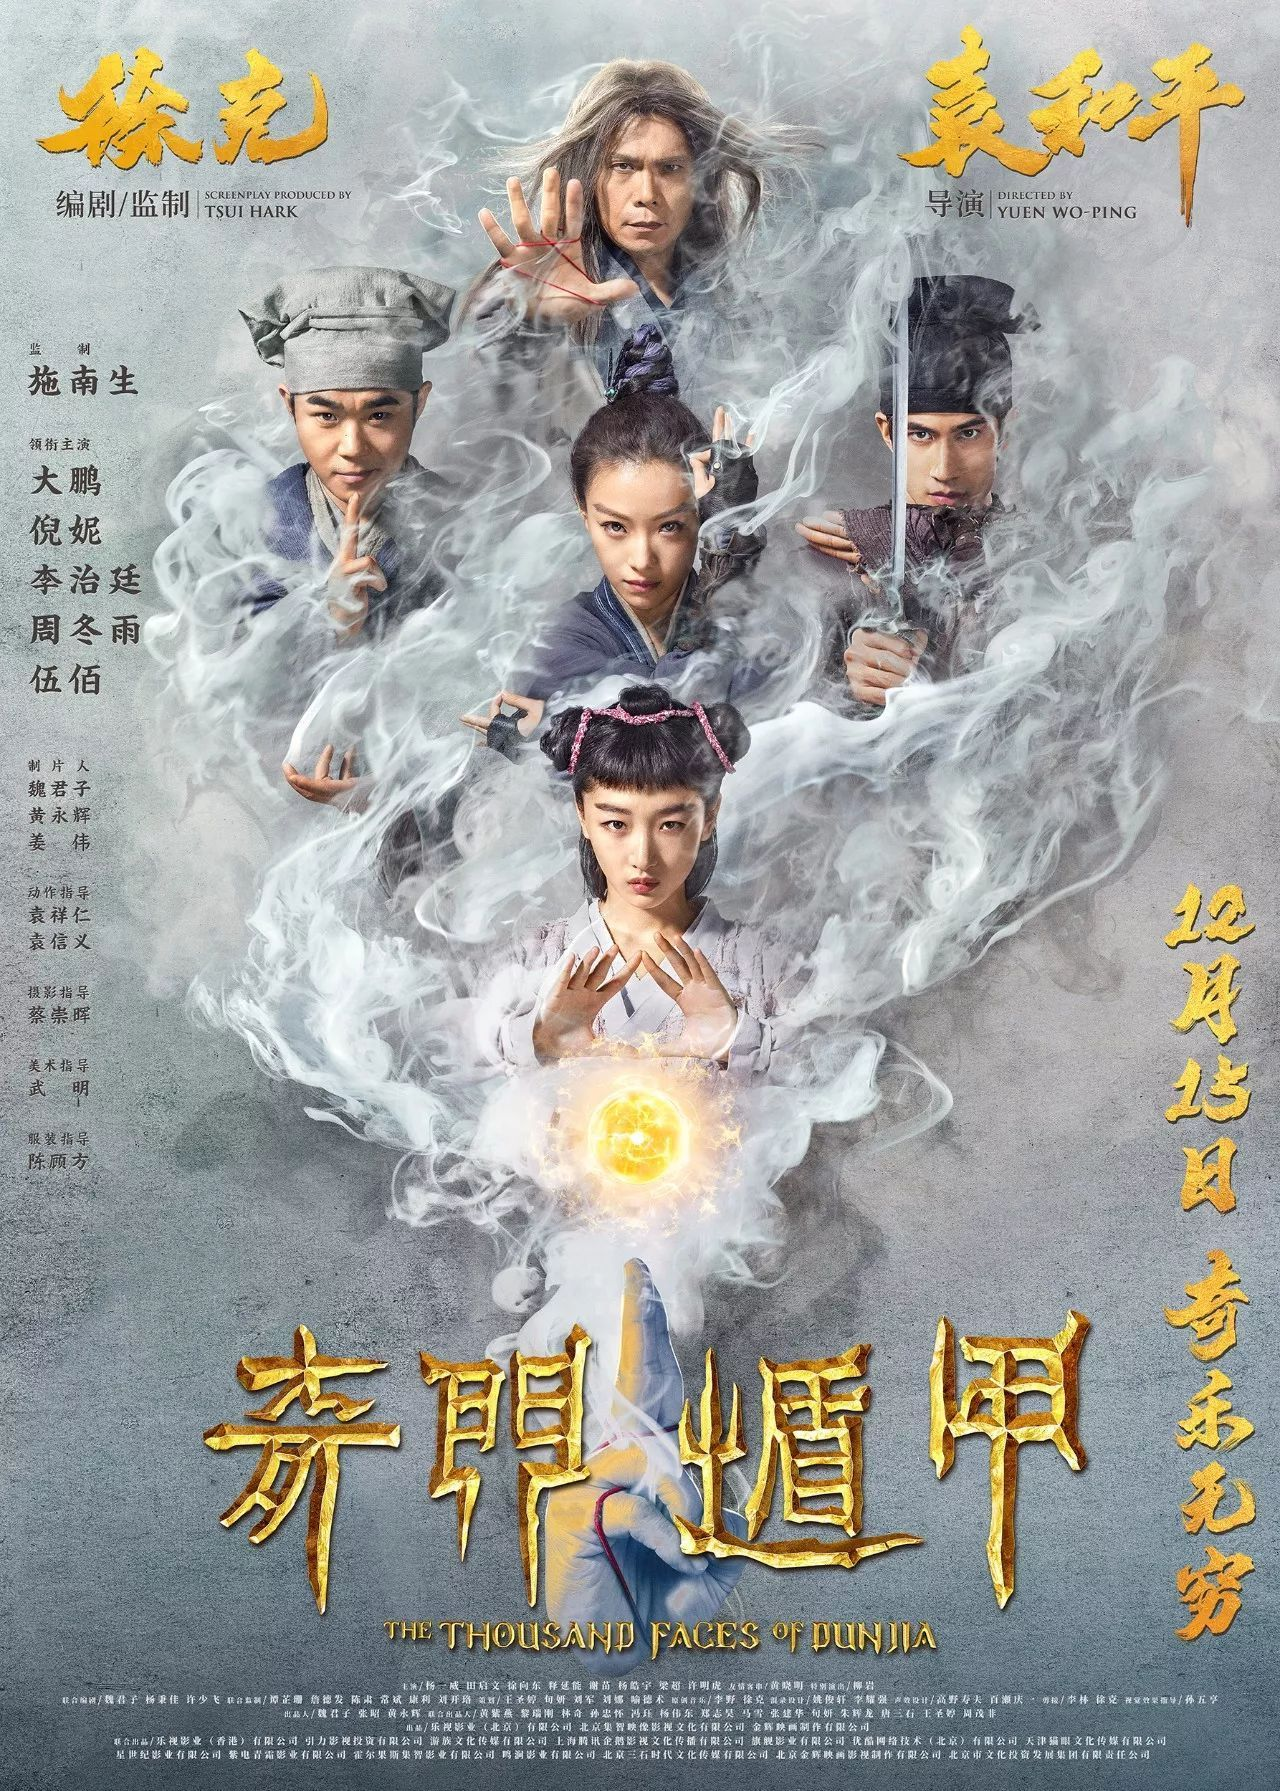 The Thousand Faces of Dunjia 奇門遁甲 海報 導演:袁和平 編劇:徐克